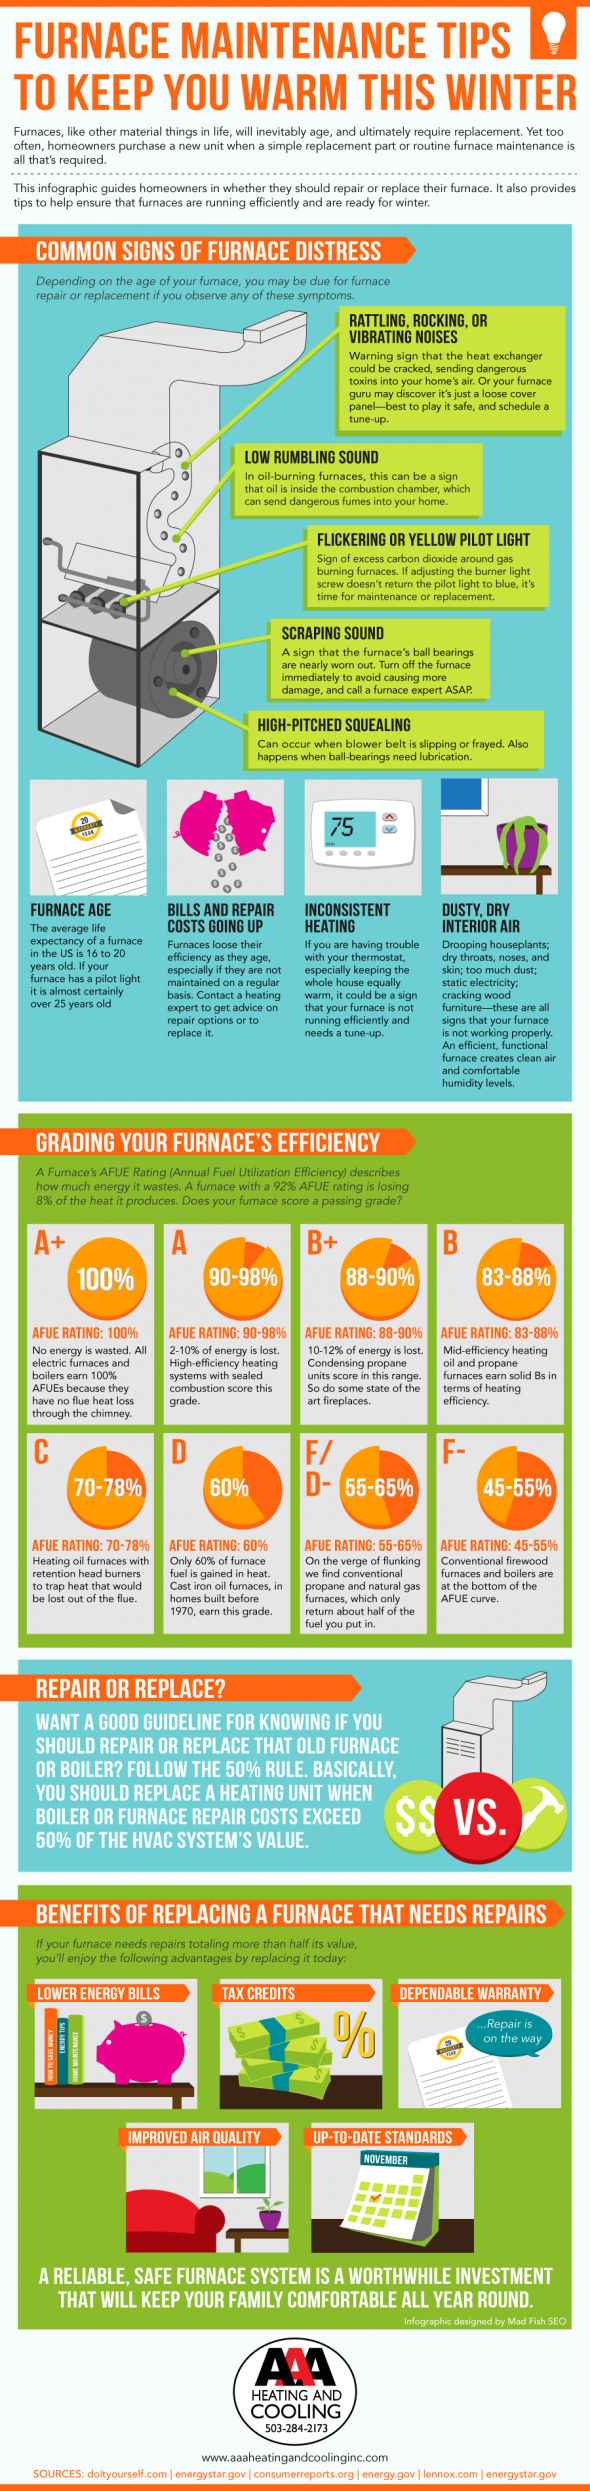 Infographic Furnace Maintenance Tips To Keep You Warm All Winter